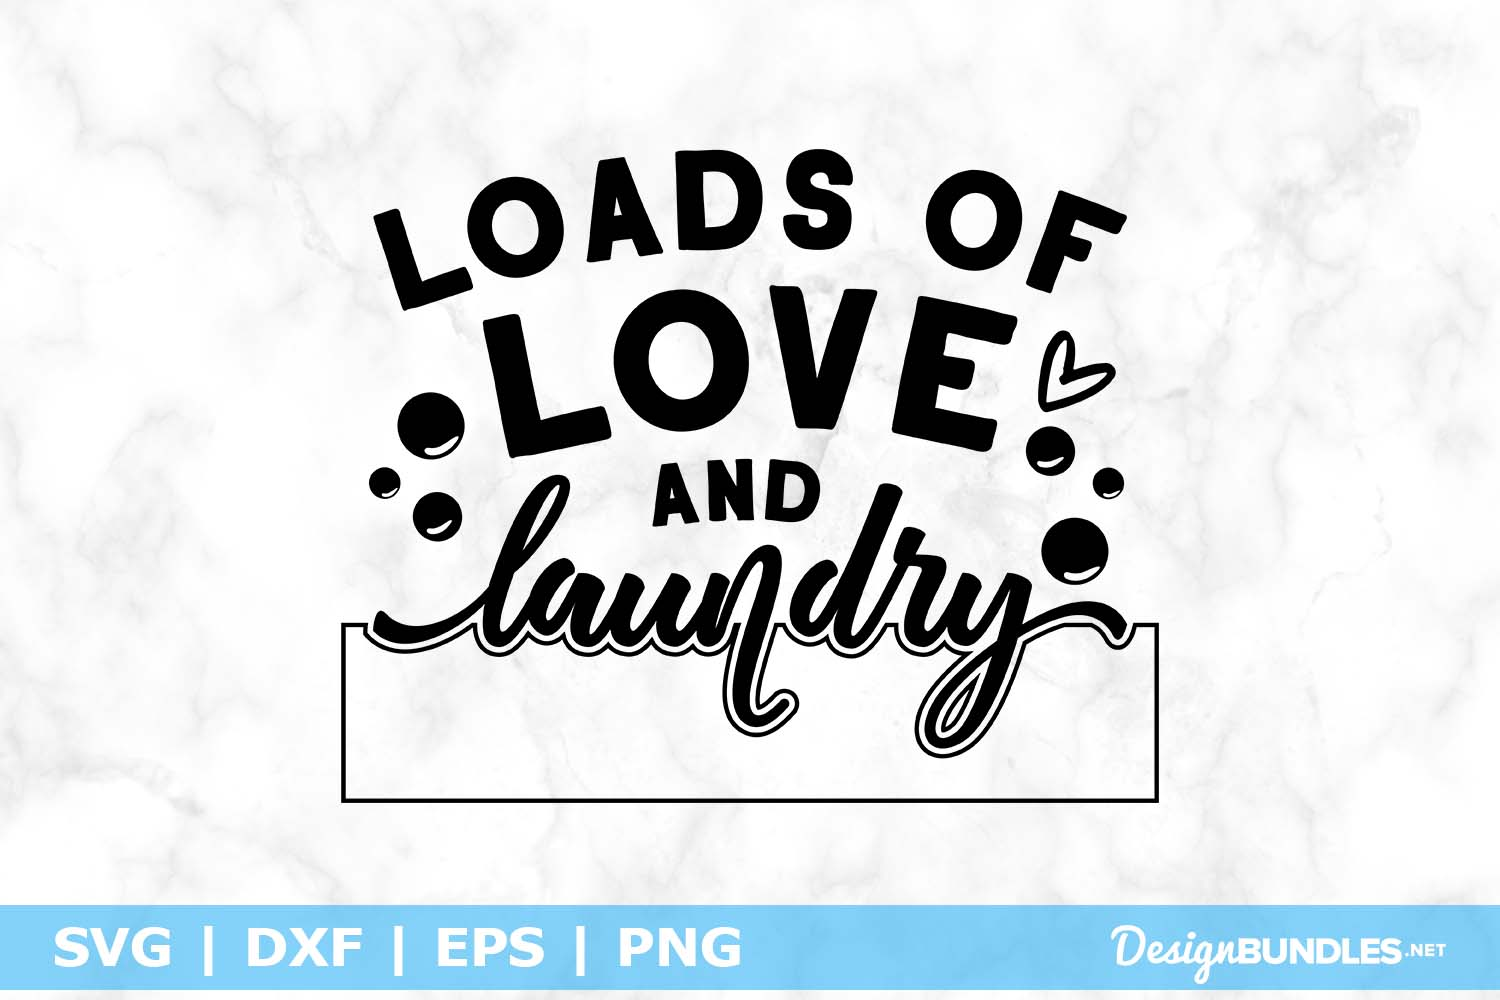 Loads Of Love And Laundry SVG File example image 1